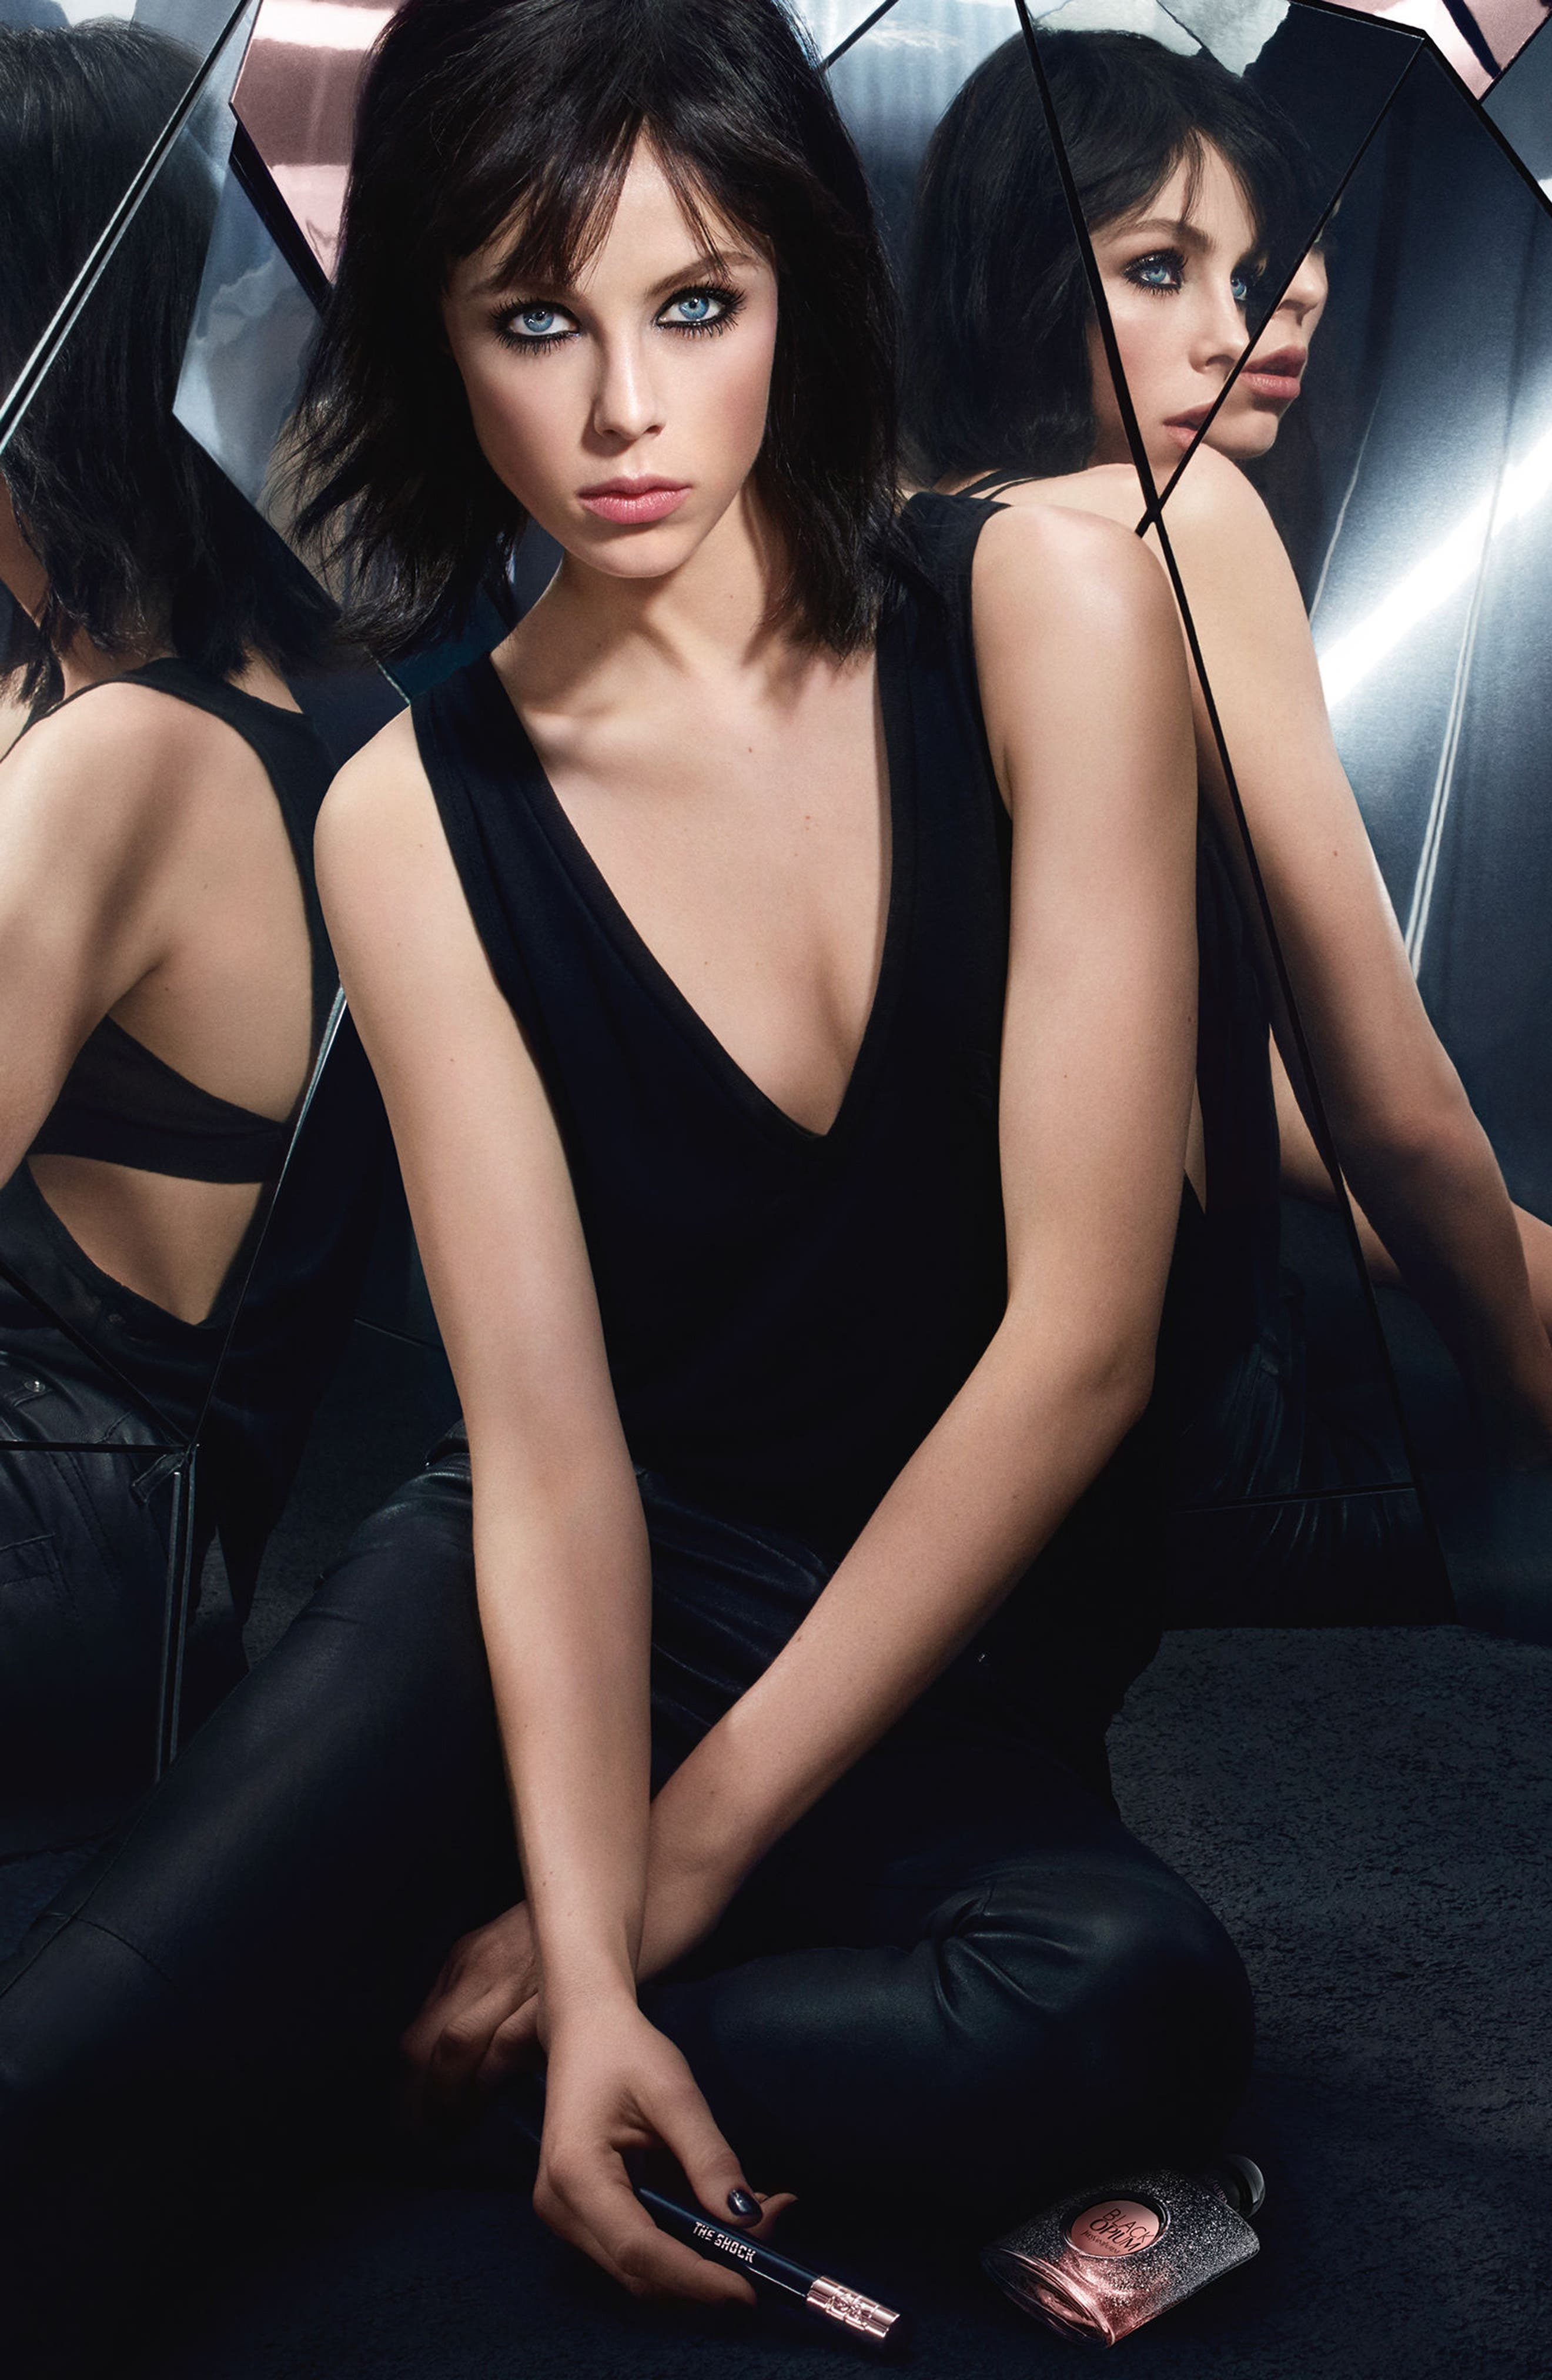 Yves Saint Laurent The Shock Collection